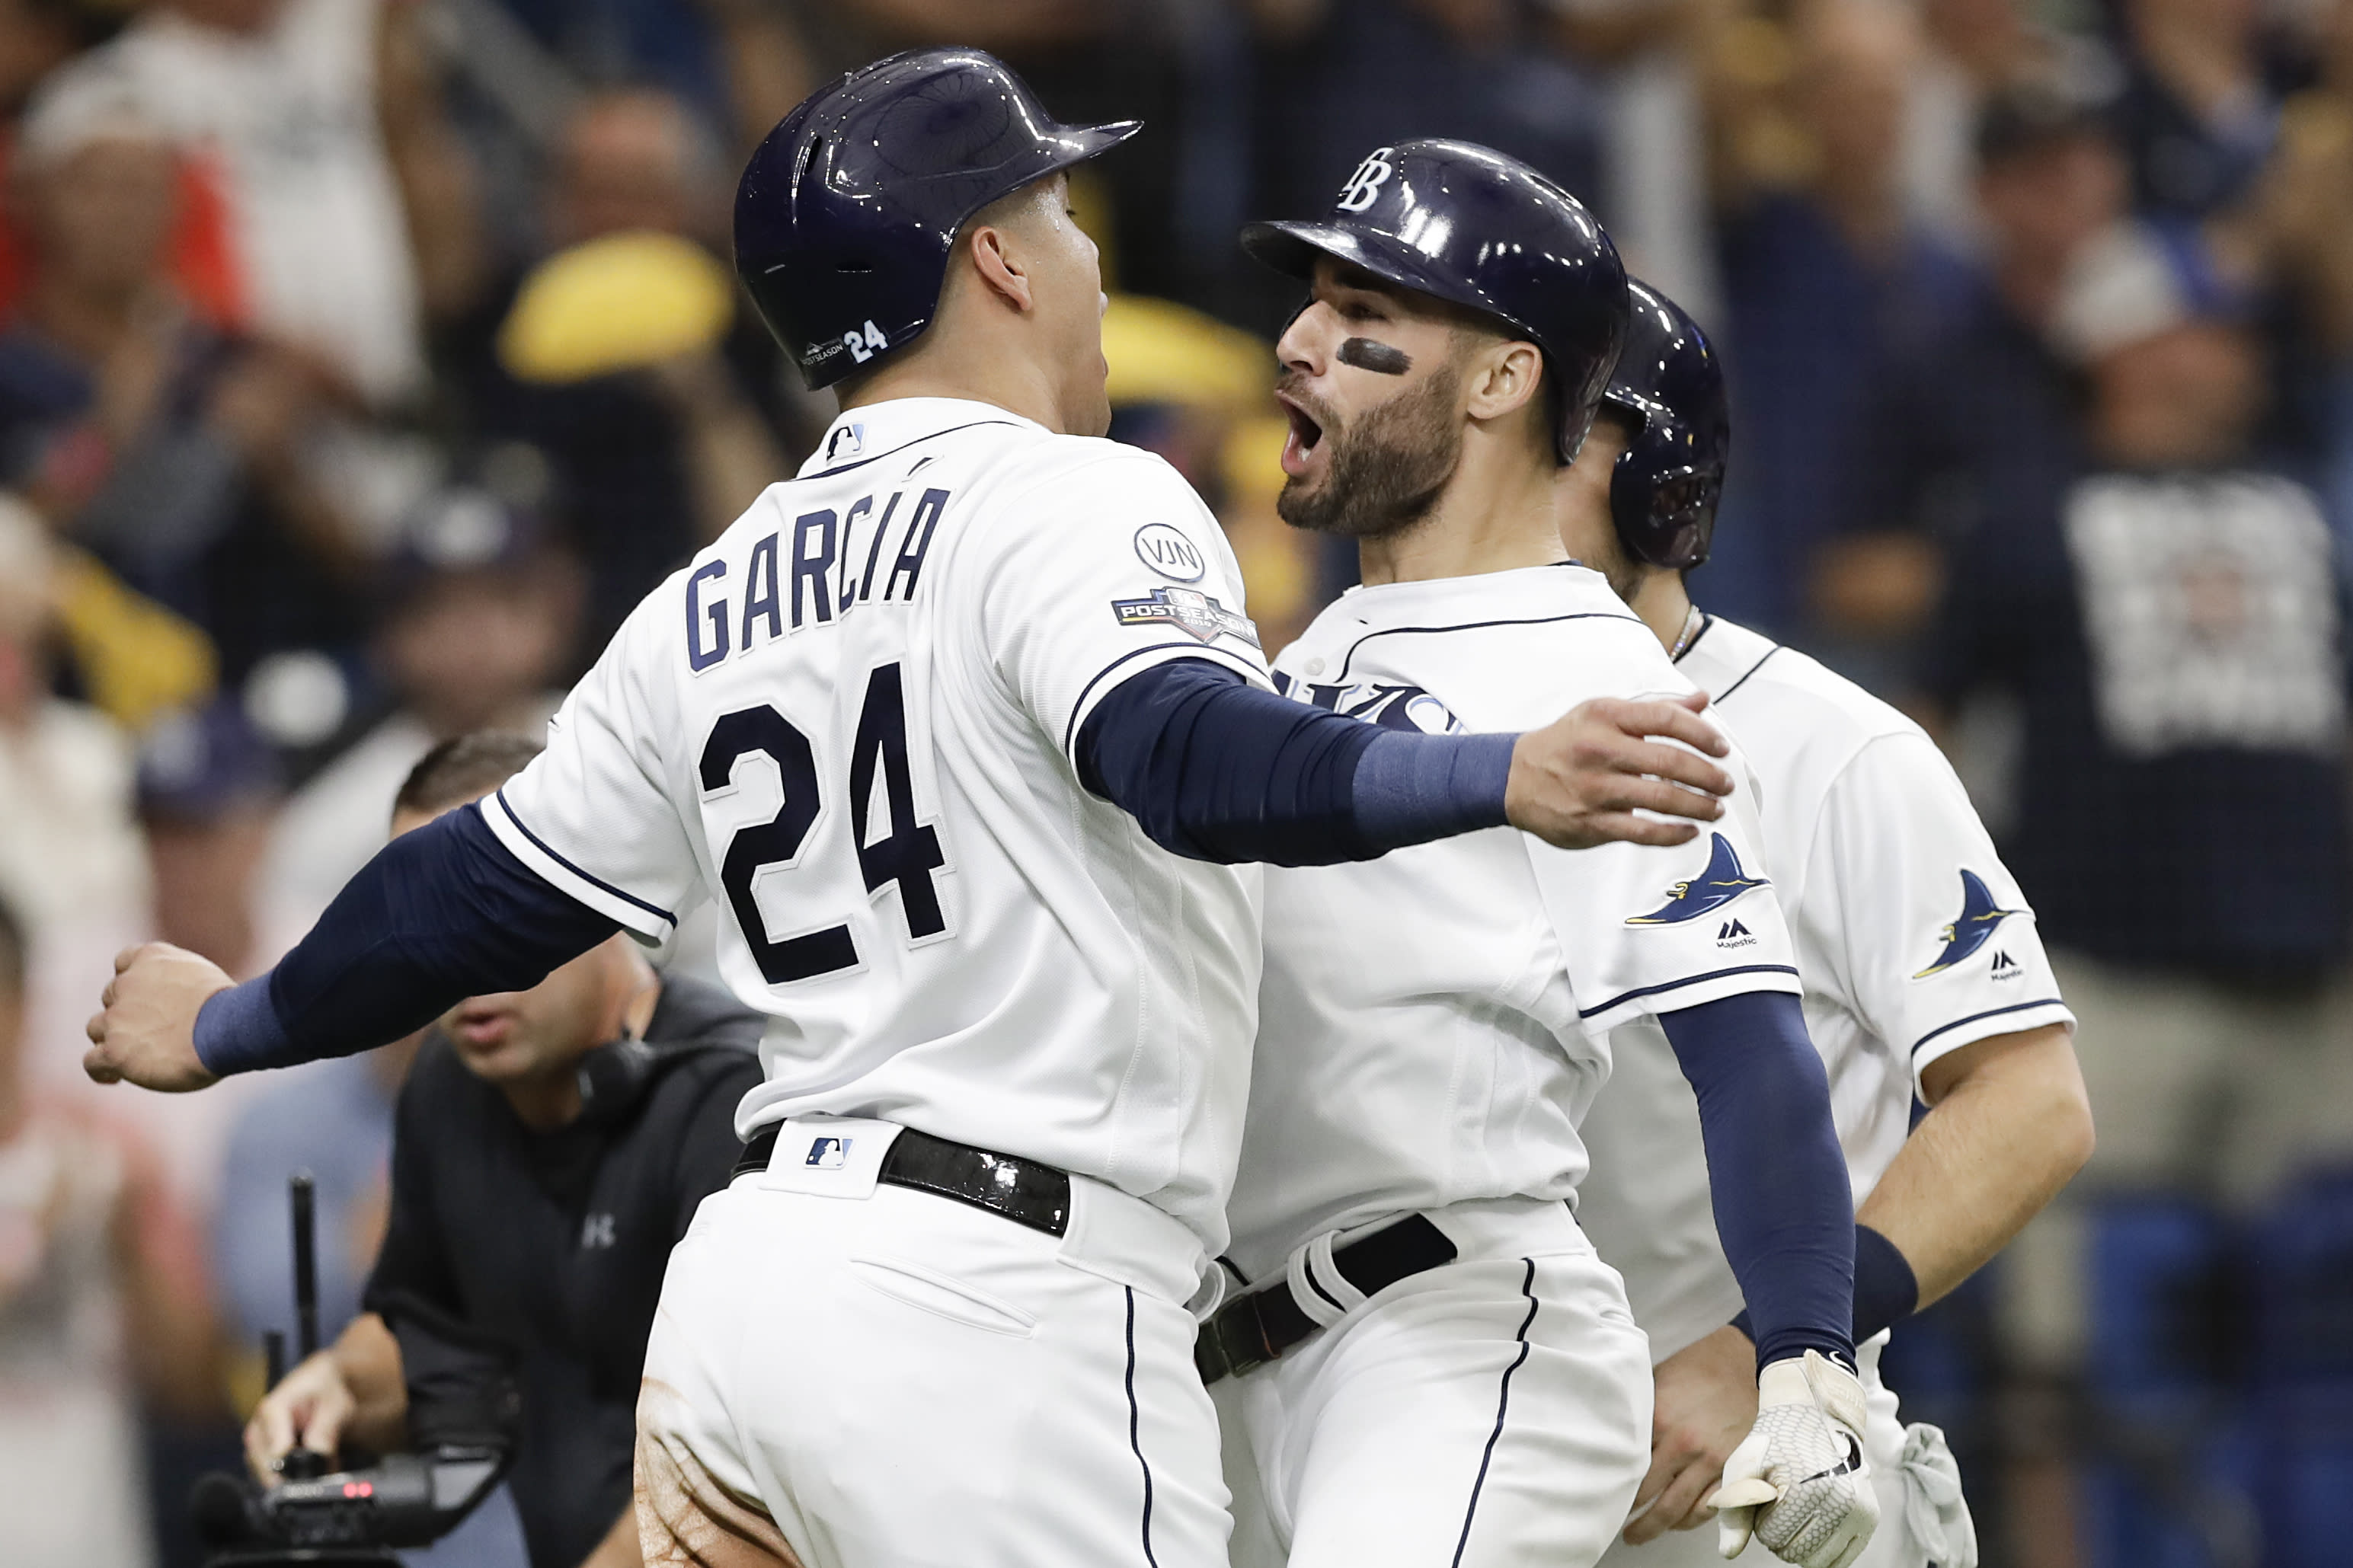 rays pummel greinke morton clutch vs astros to win game 3 rays pummel greinke morton clutch vs